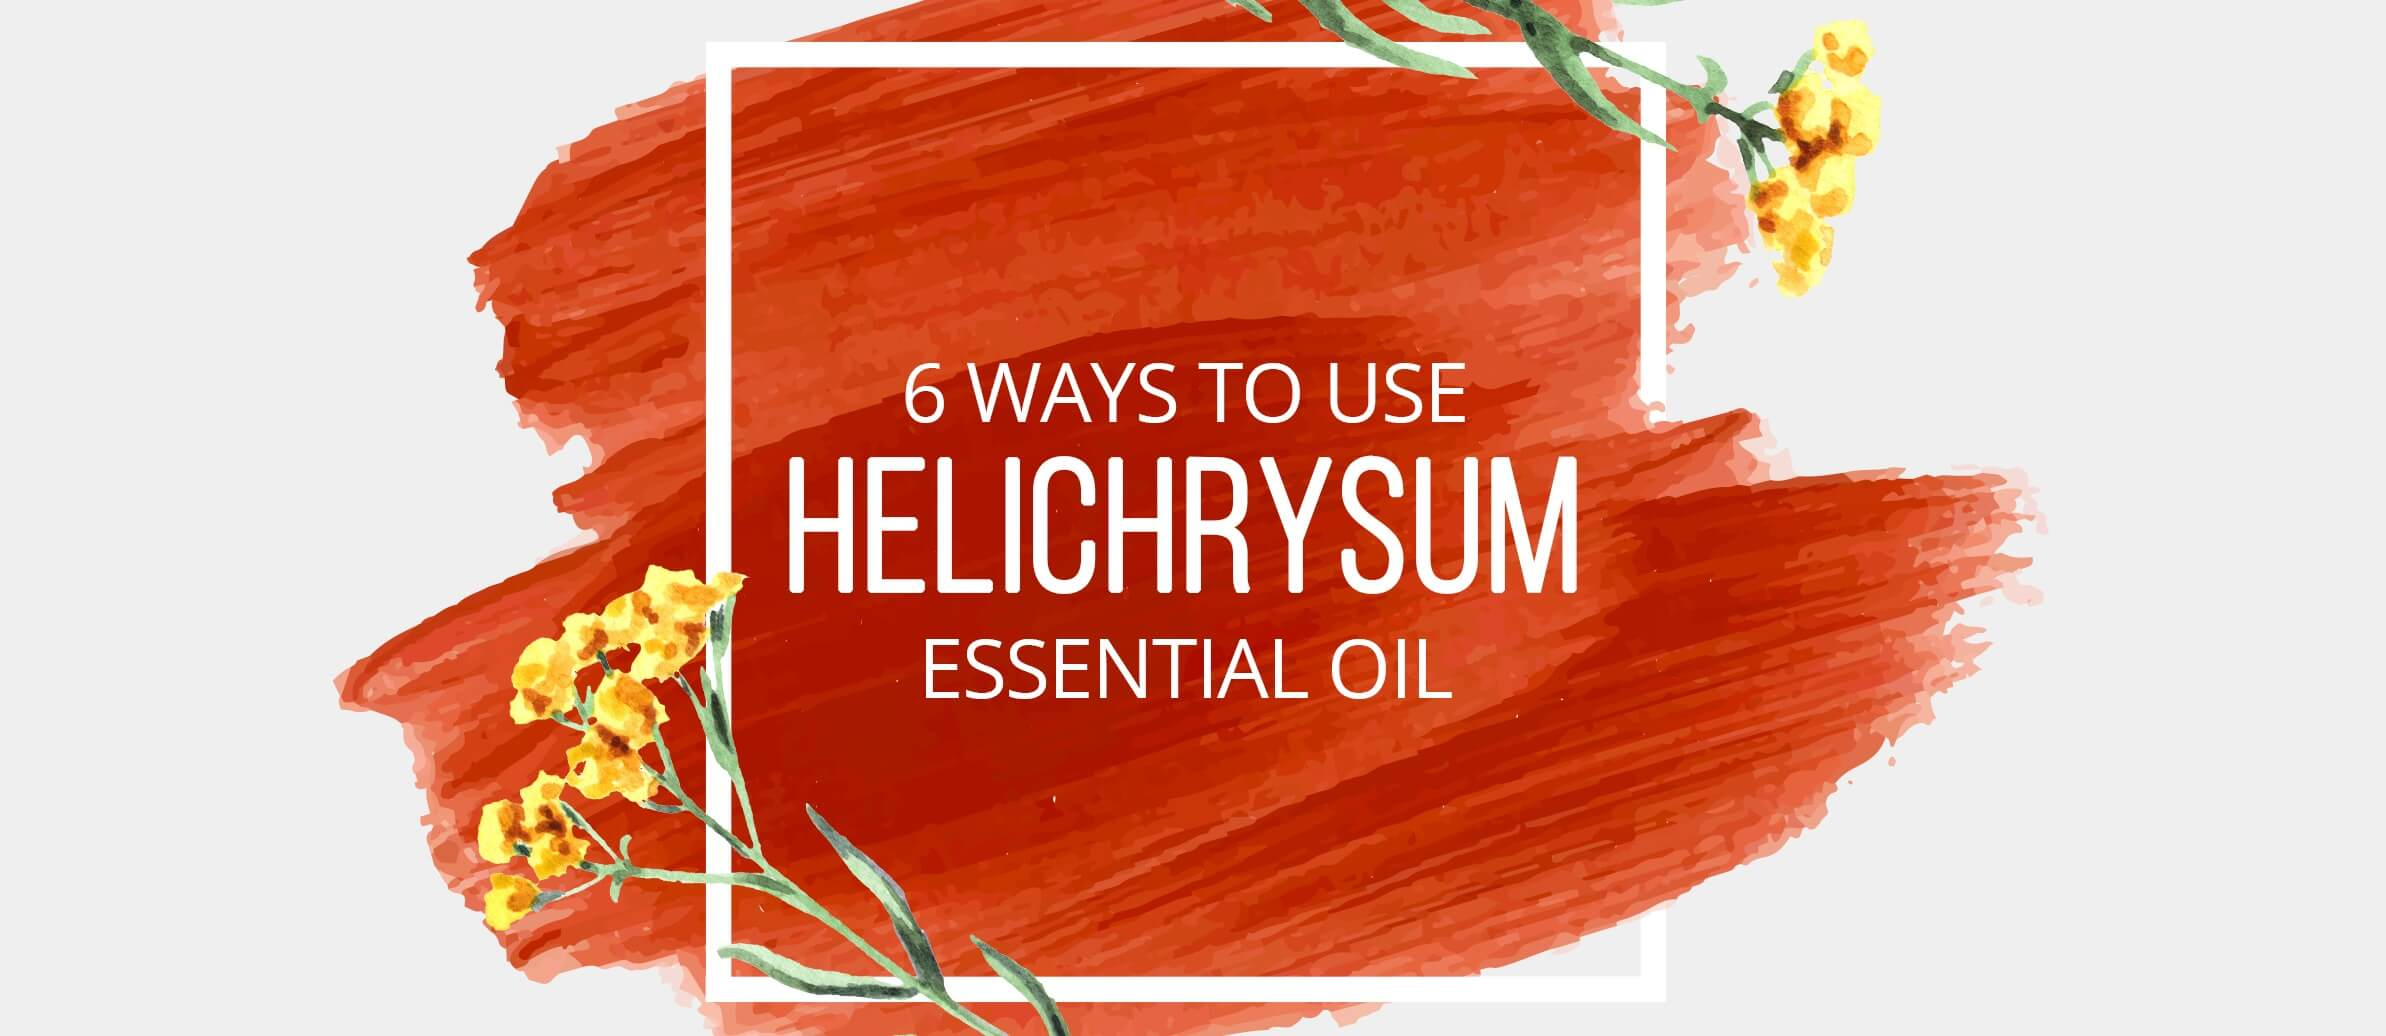 6 Ways to Use Helichrysum Essential Oil - Lindsey Elmore